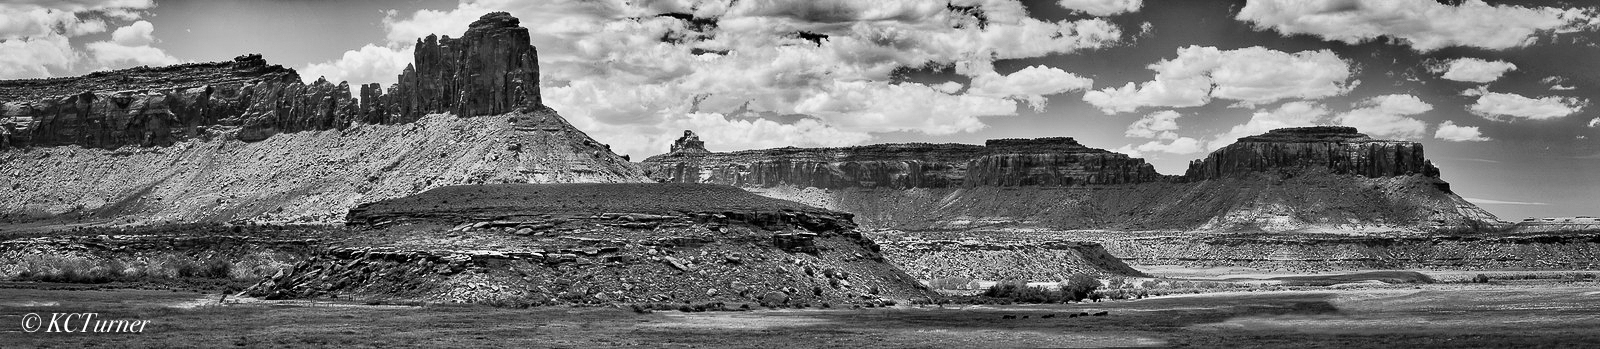 Moab, Utah, colorful canyons, buttes, spires, monochrome, photography, B&W, black, white, landscapes, panorama, photo